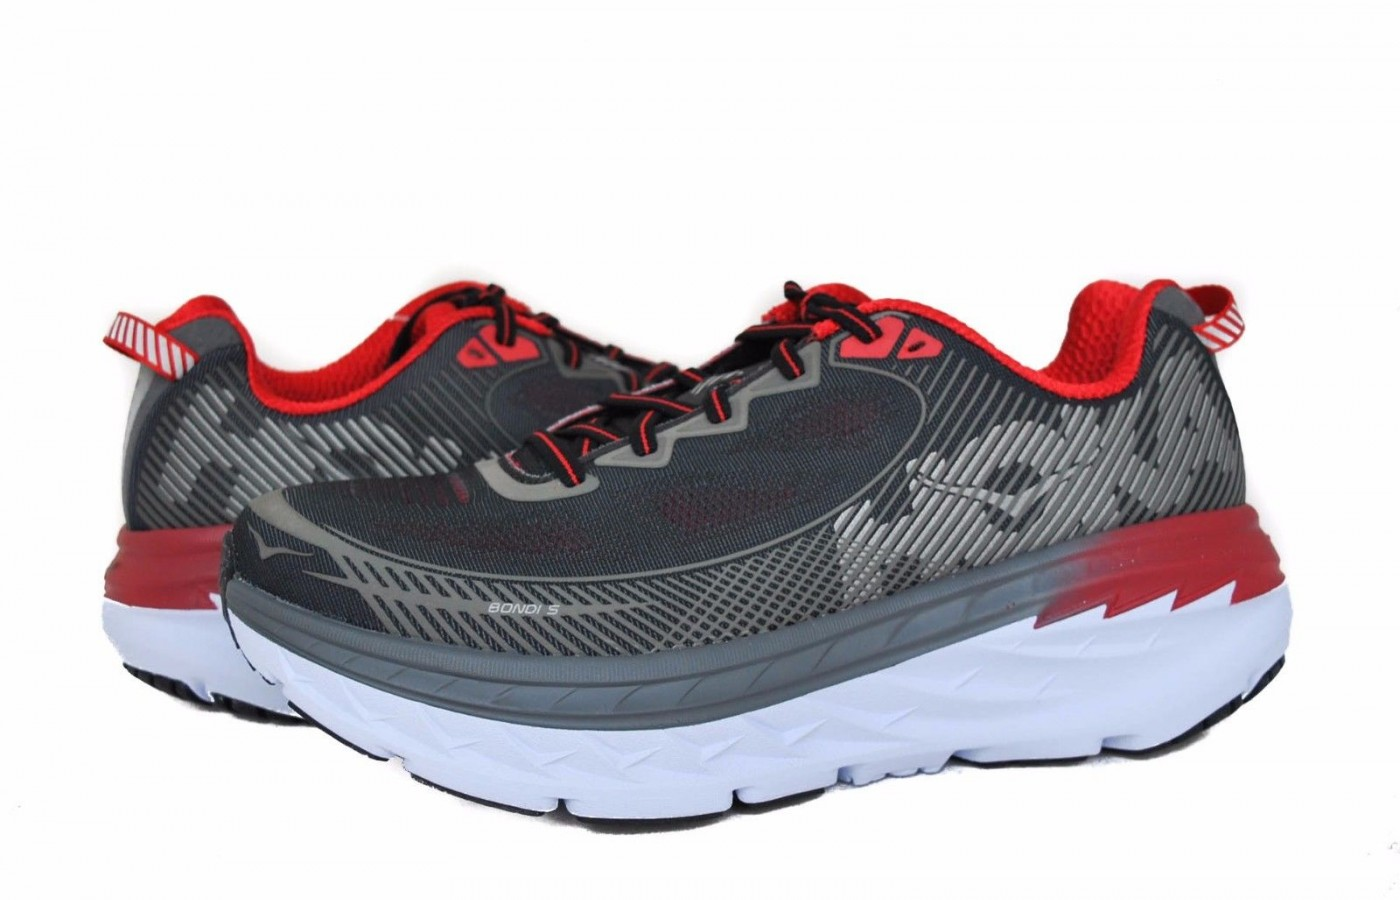 hoka one one bondi 5 pair